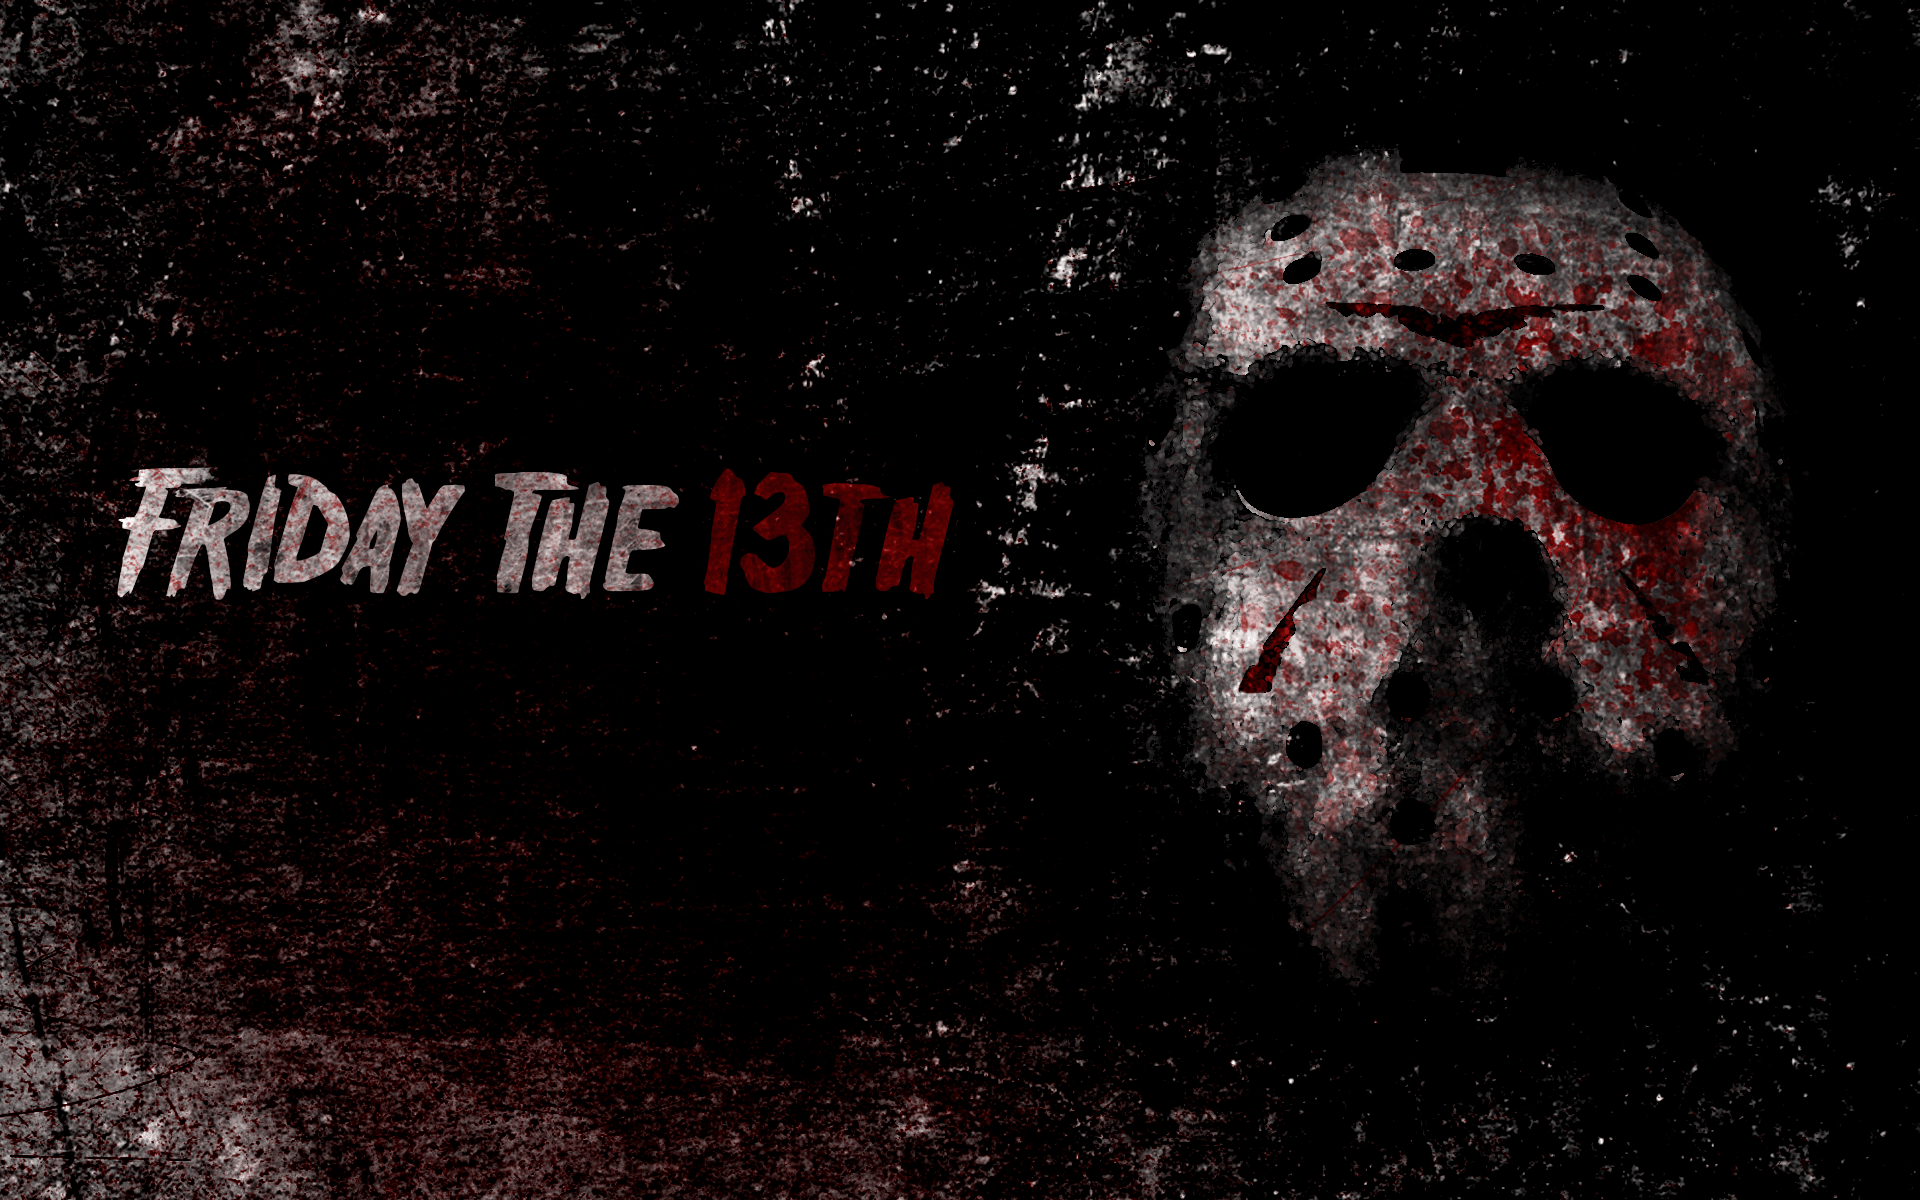 Friday the 13th by SgtP3pper